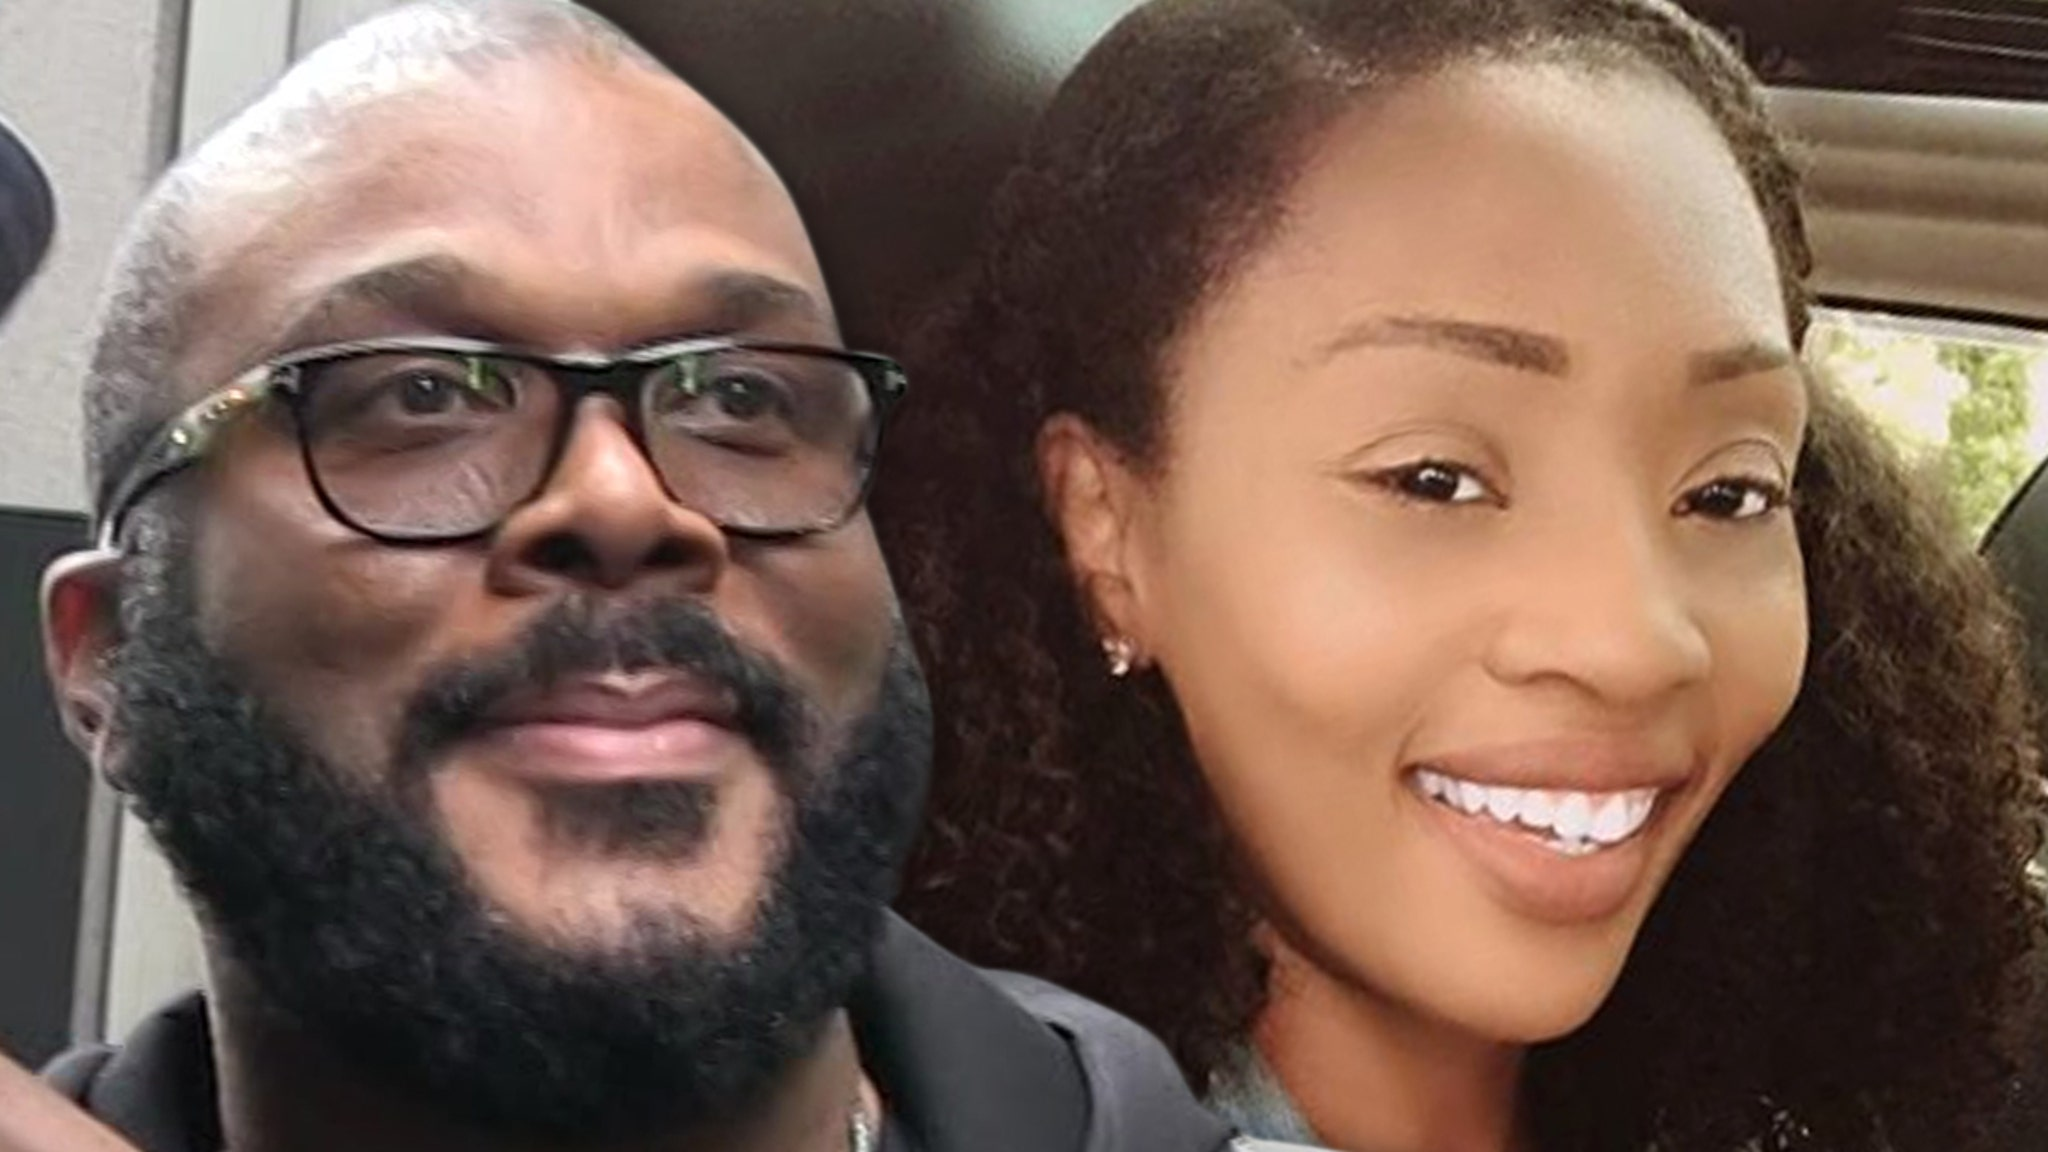 Actress Who Billboard-Pitched Tyler Perry Lands Role on His Show